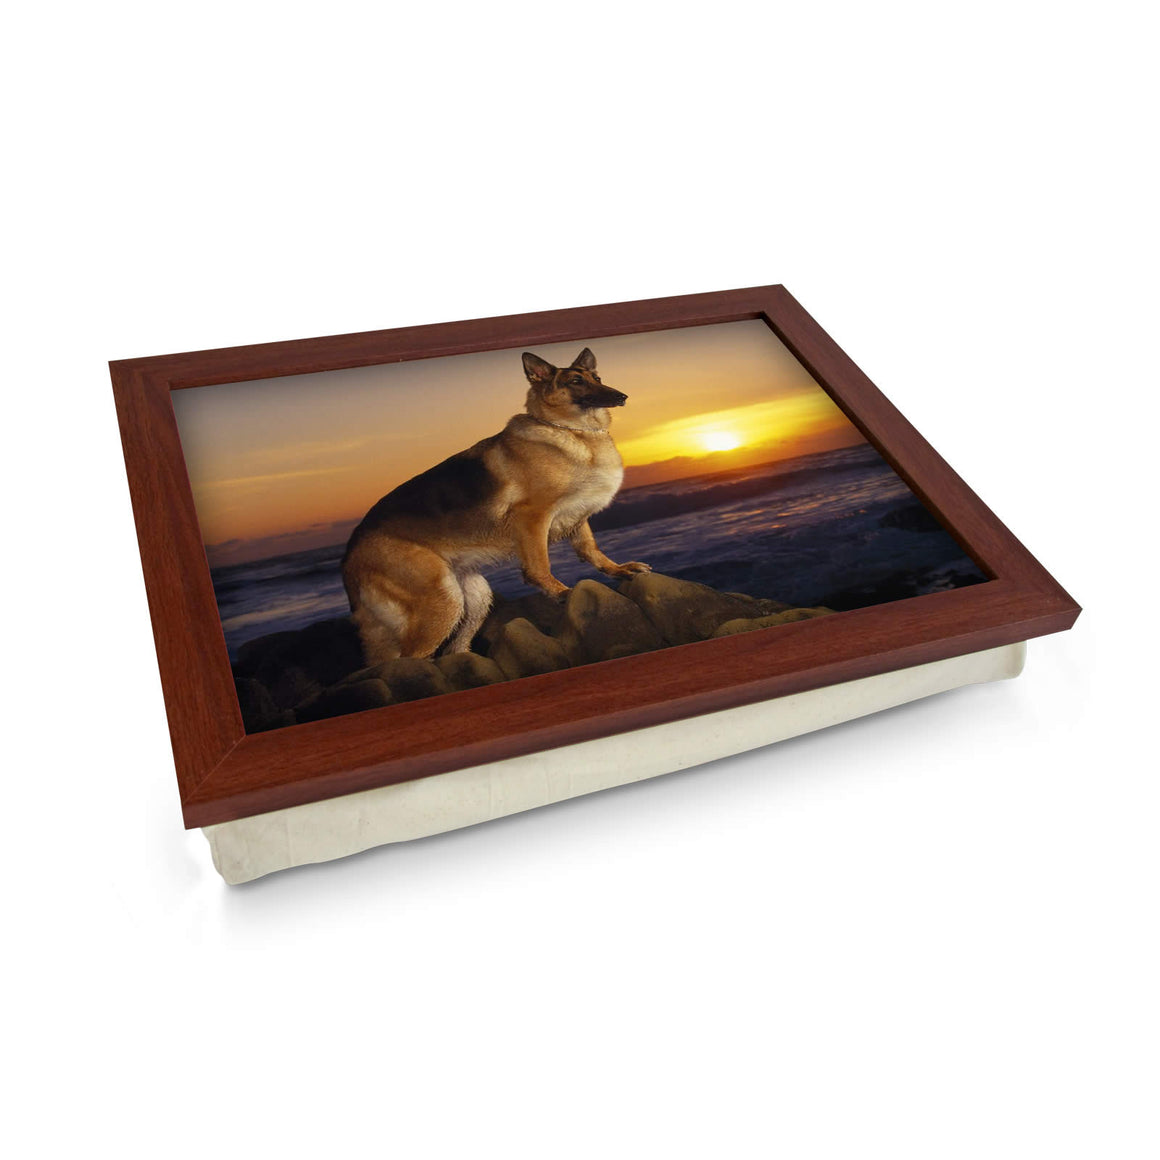 German Shepherd Dog Lap Tray